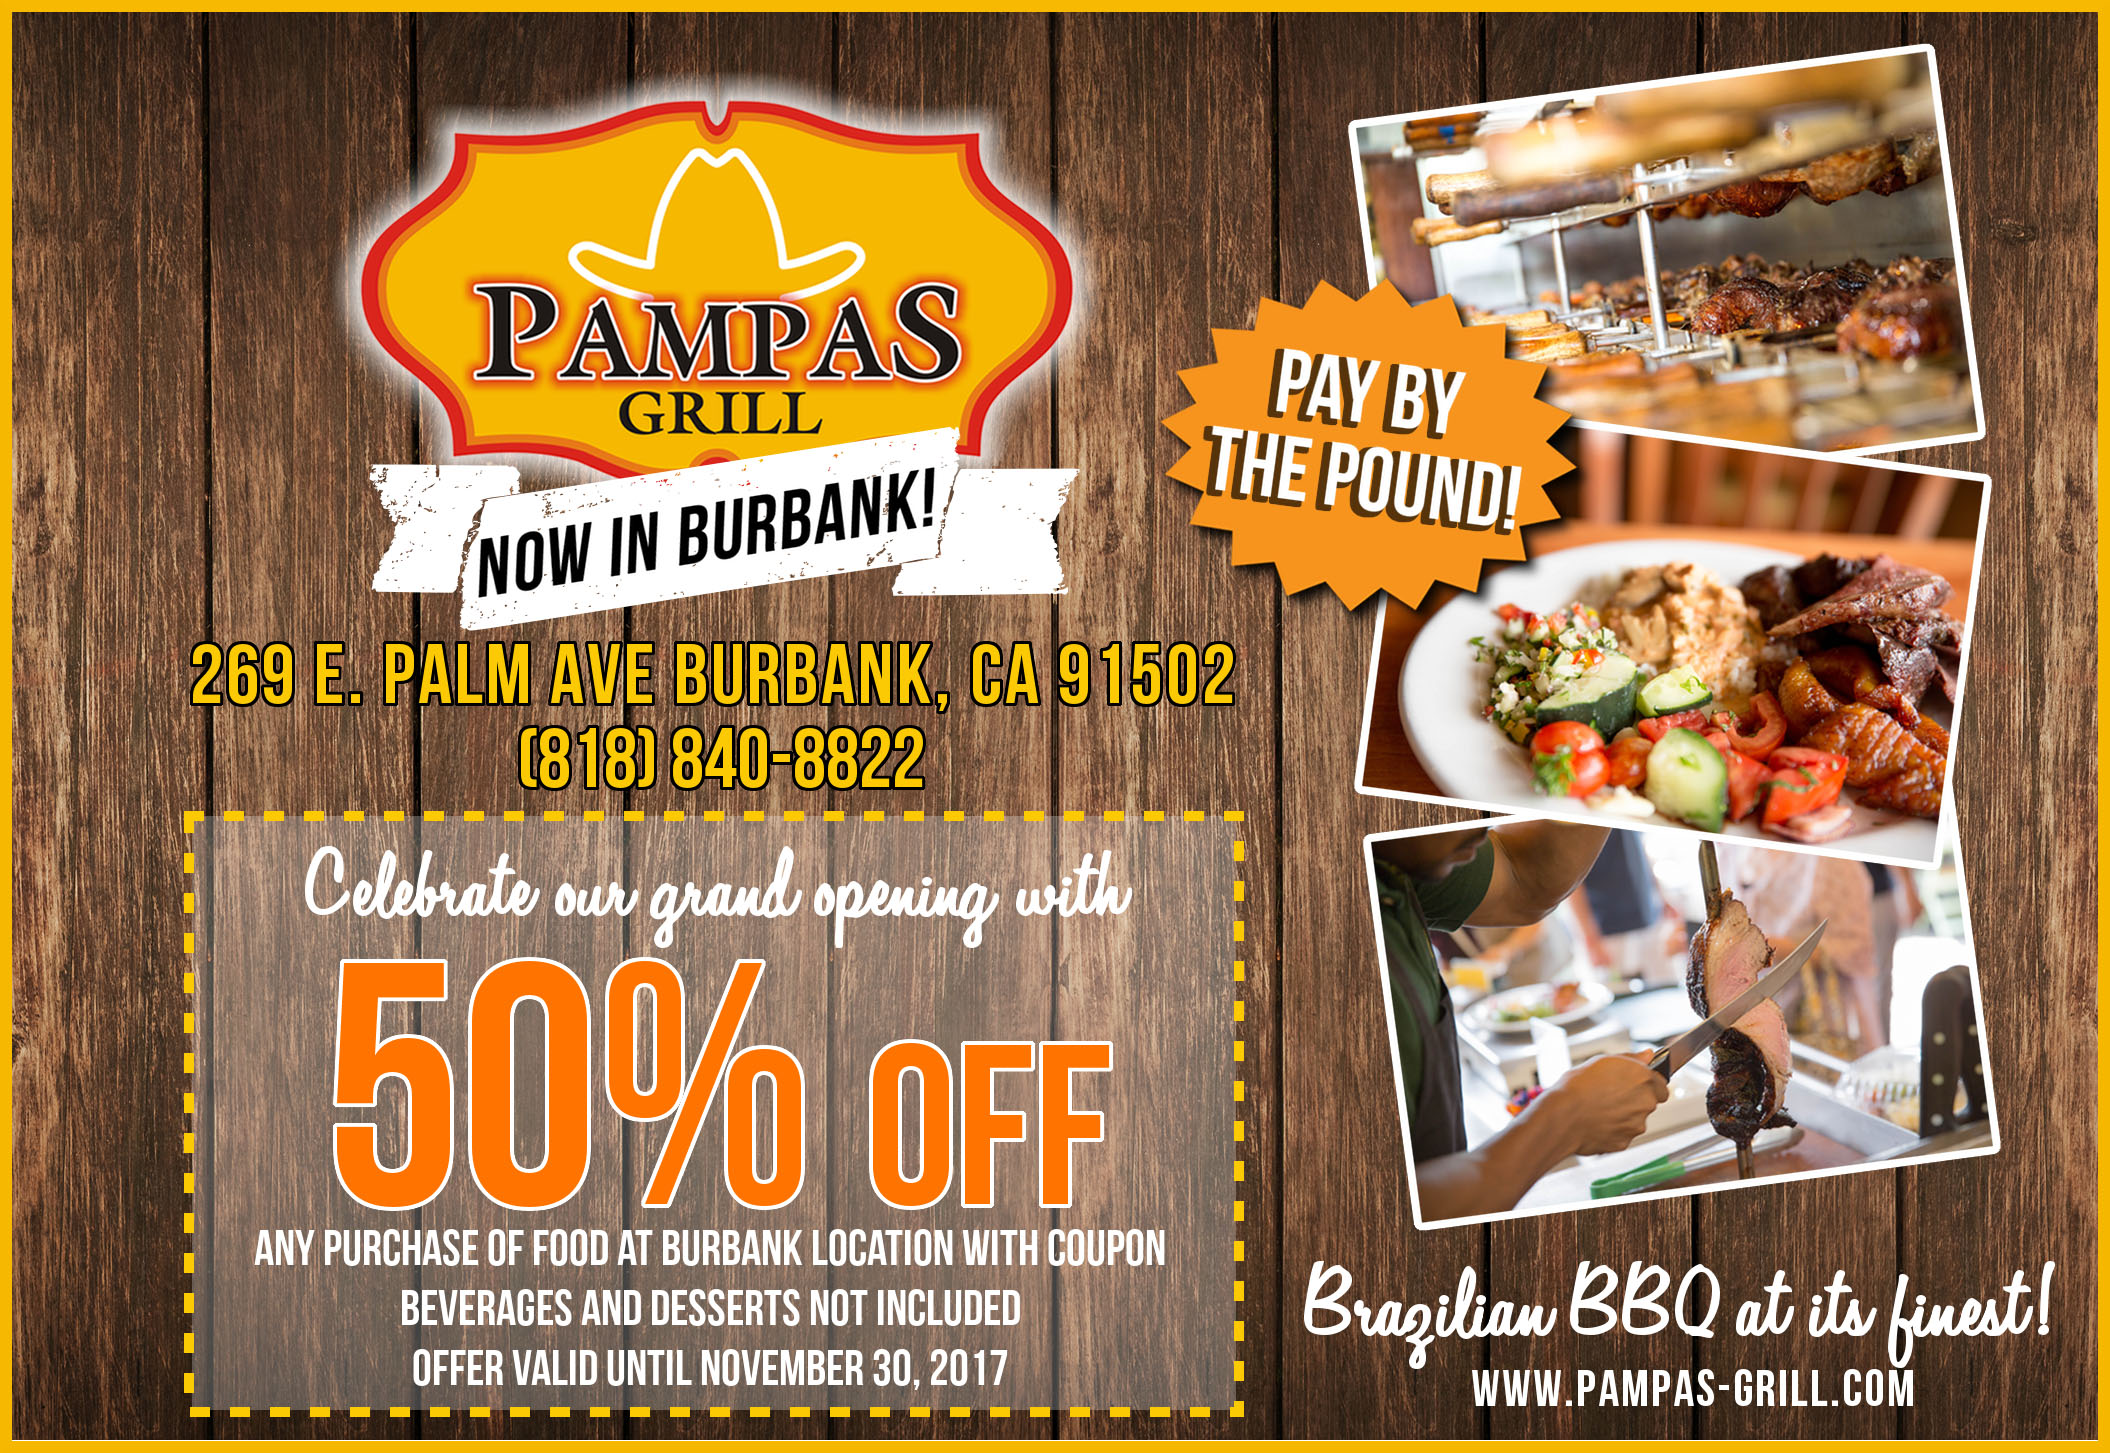 Pampas Bar and Grill